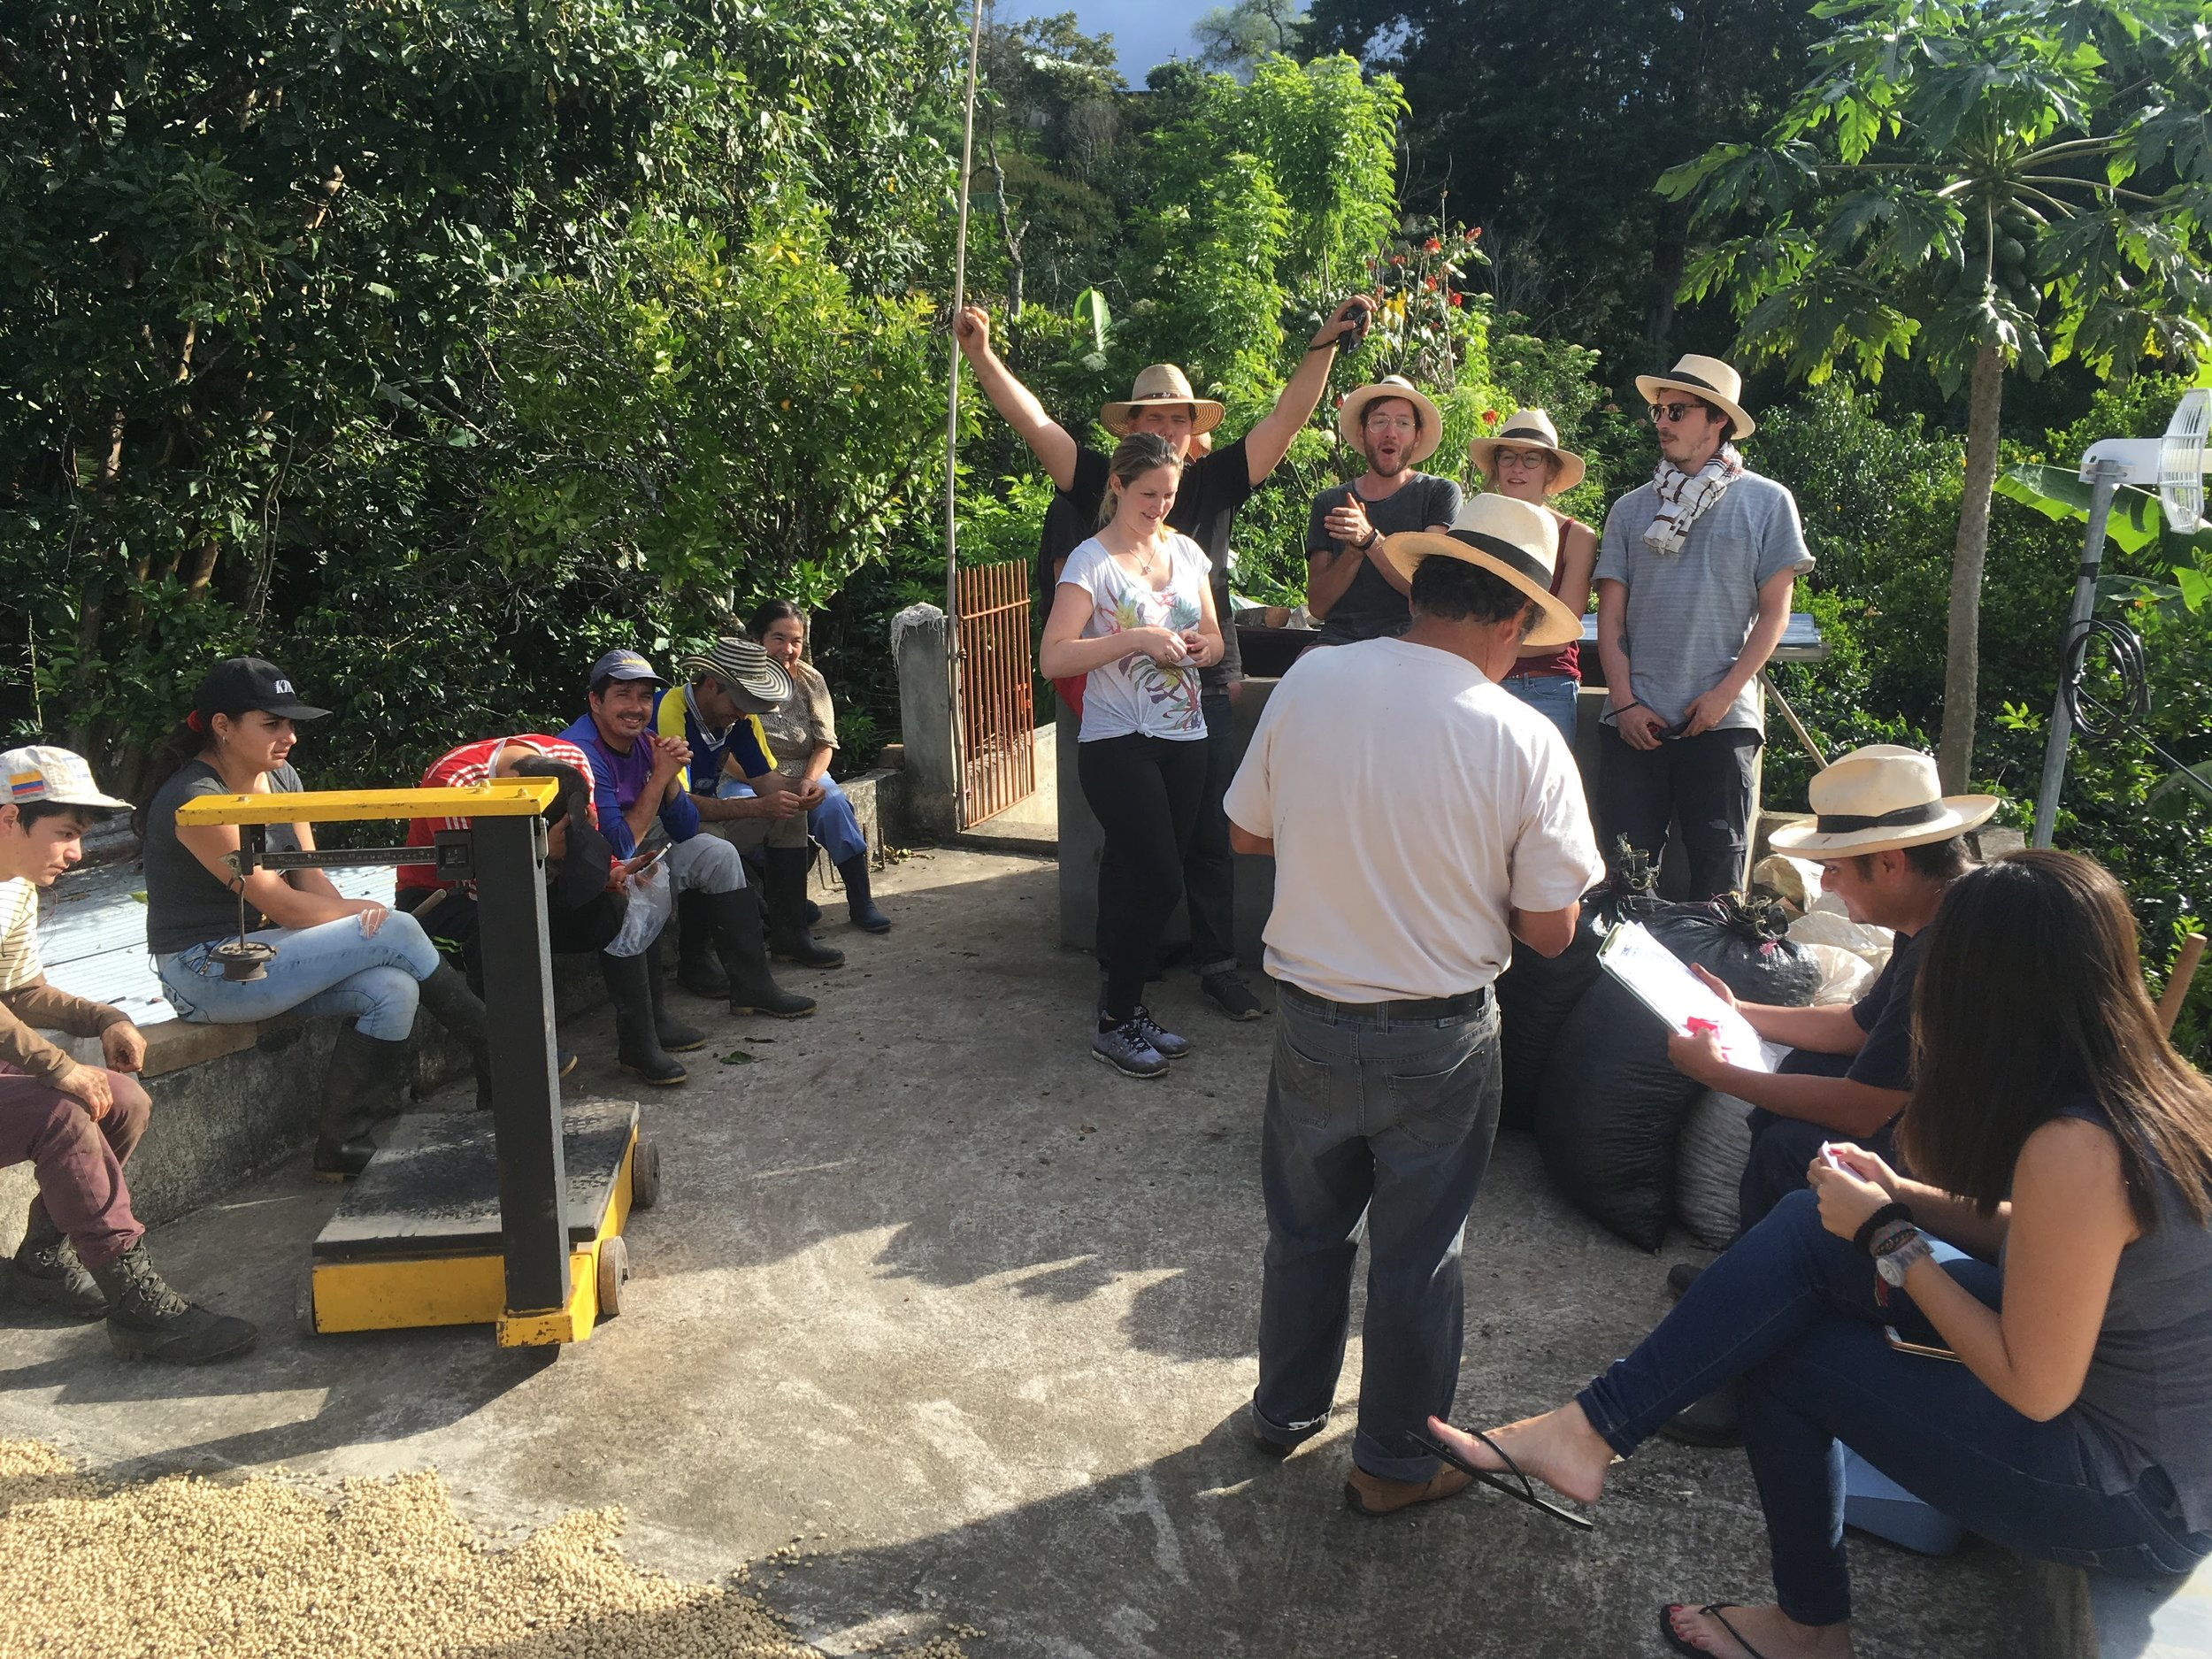 Weighing the day's harvest. Lousy pickings on the European right, good pickings on the Colombian left...